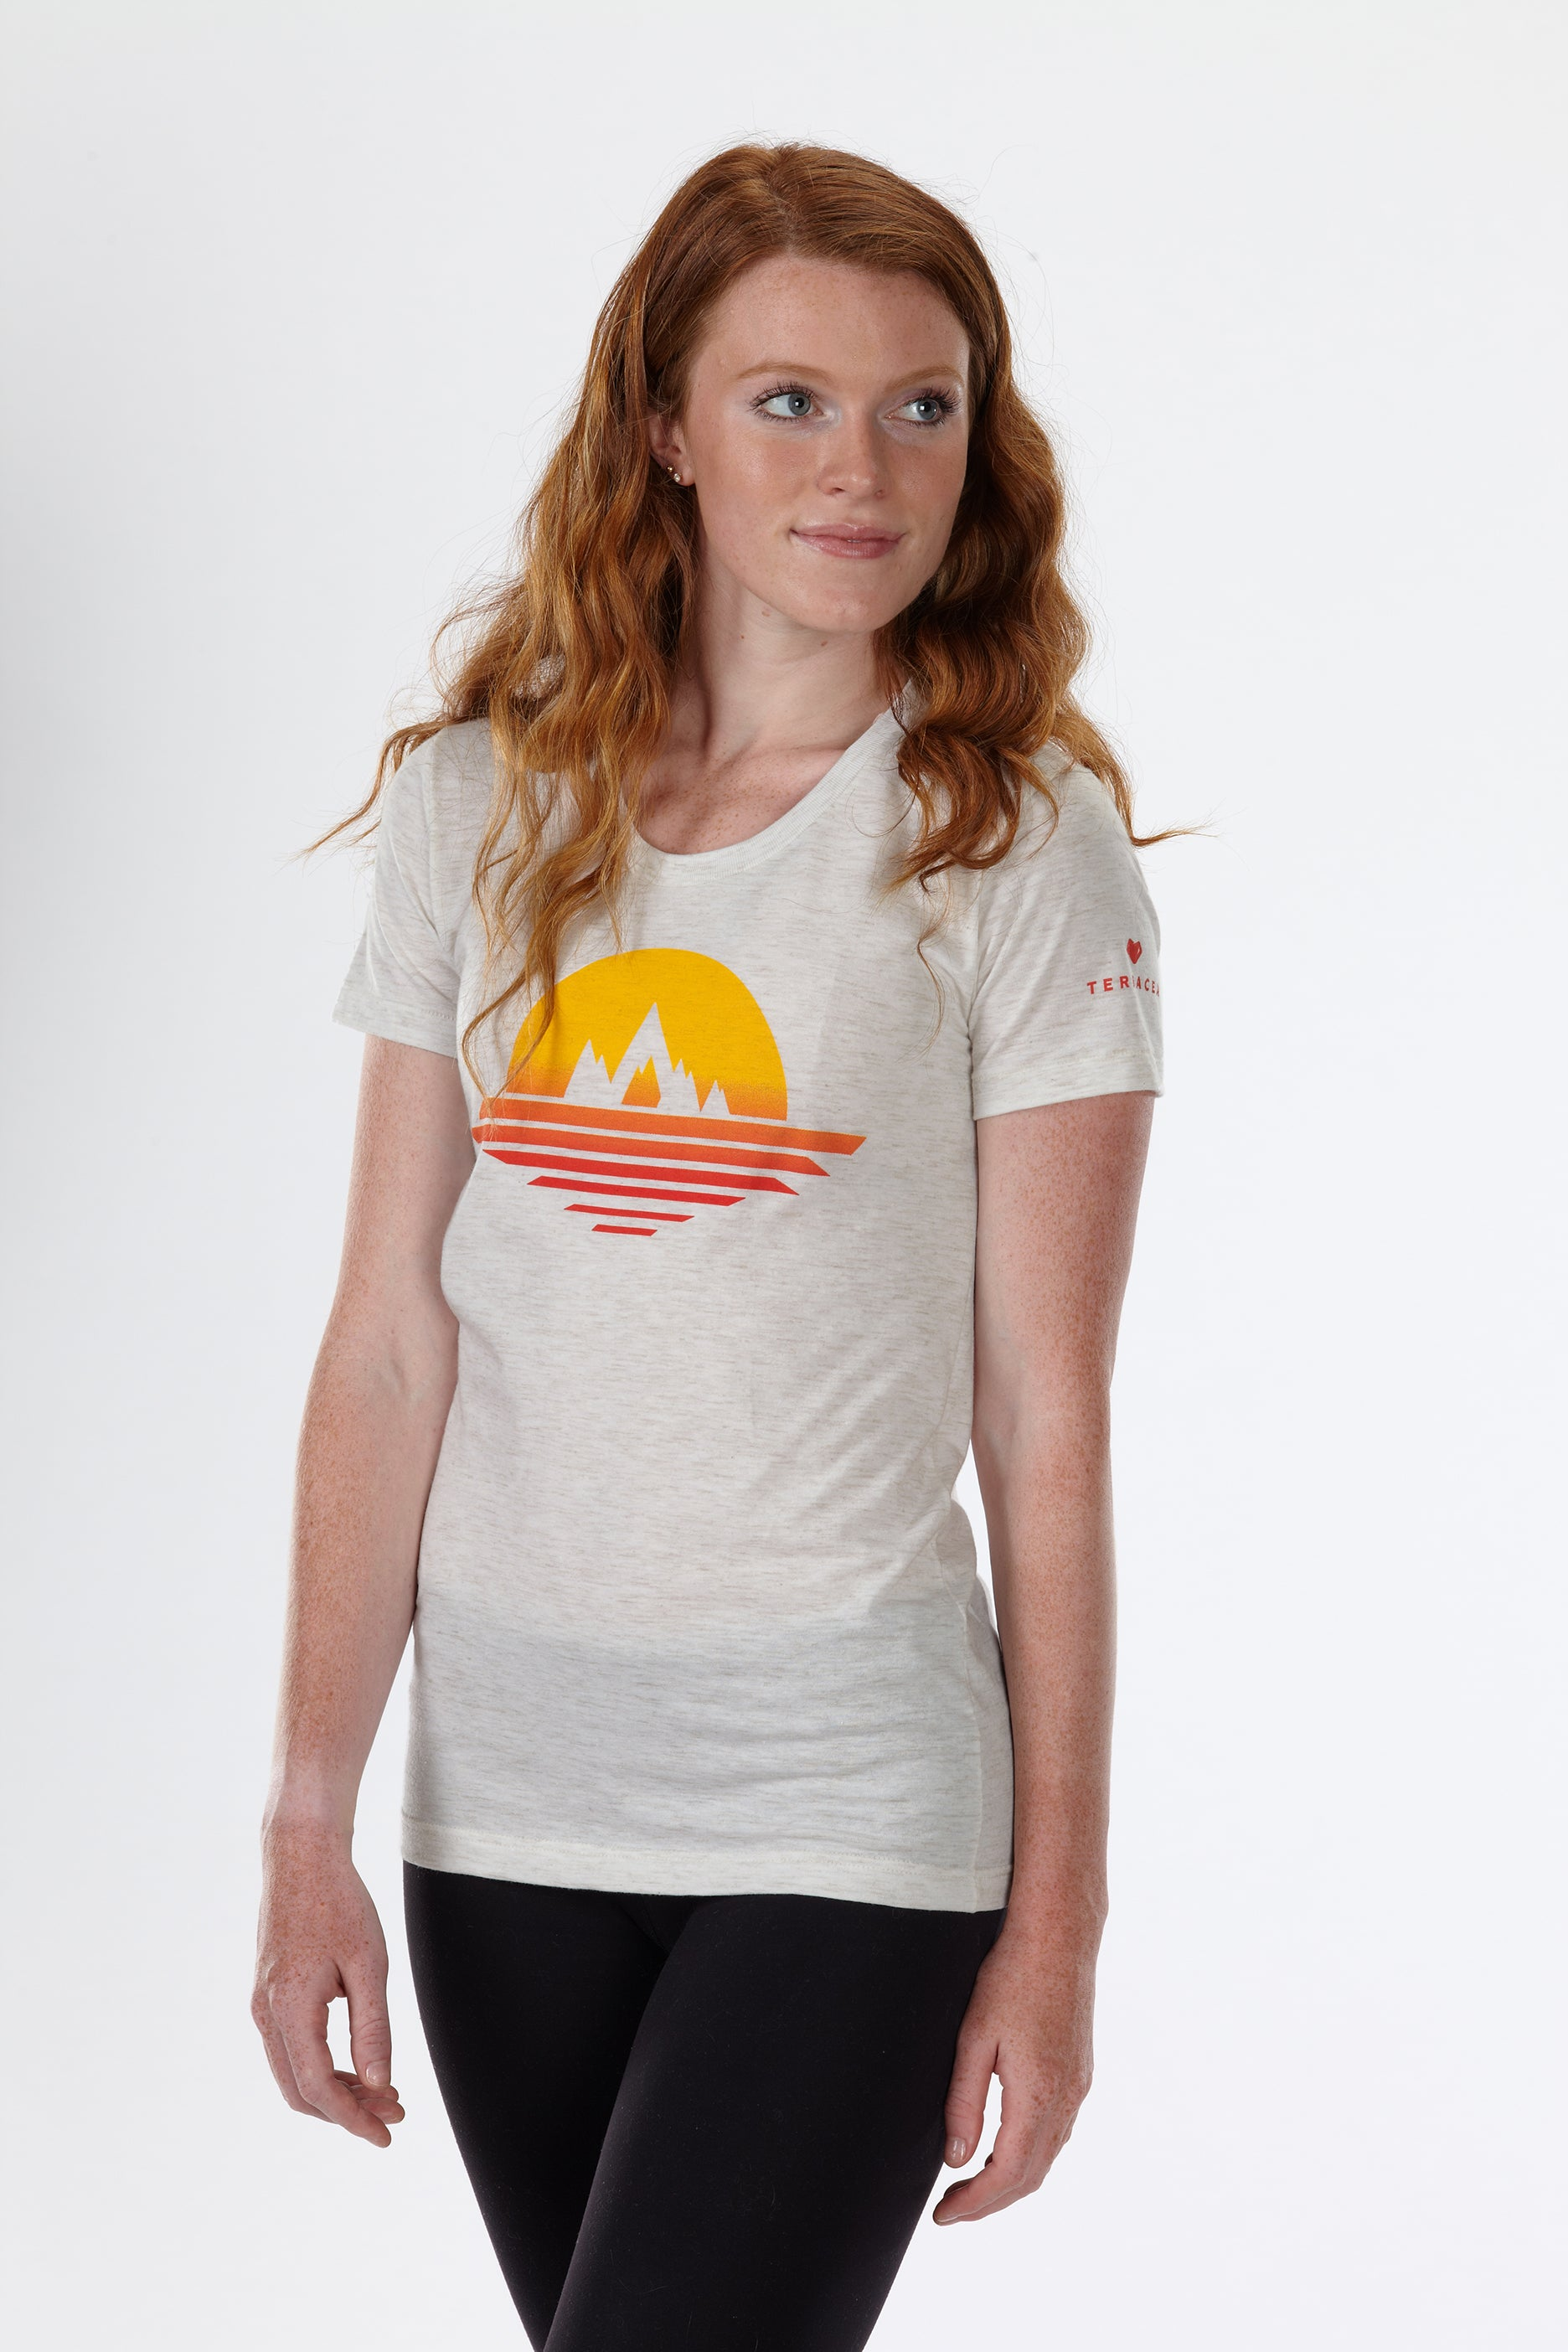 WOMEN'S VISTA T-SHIRT